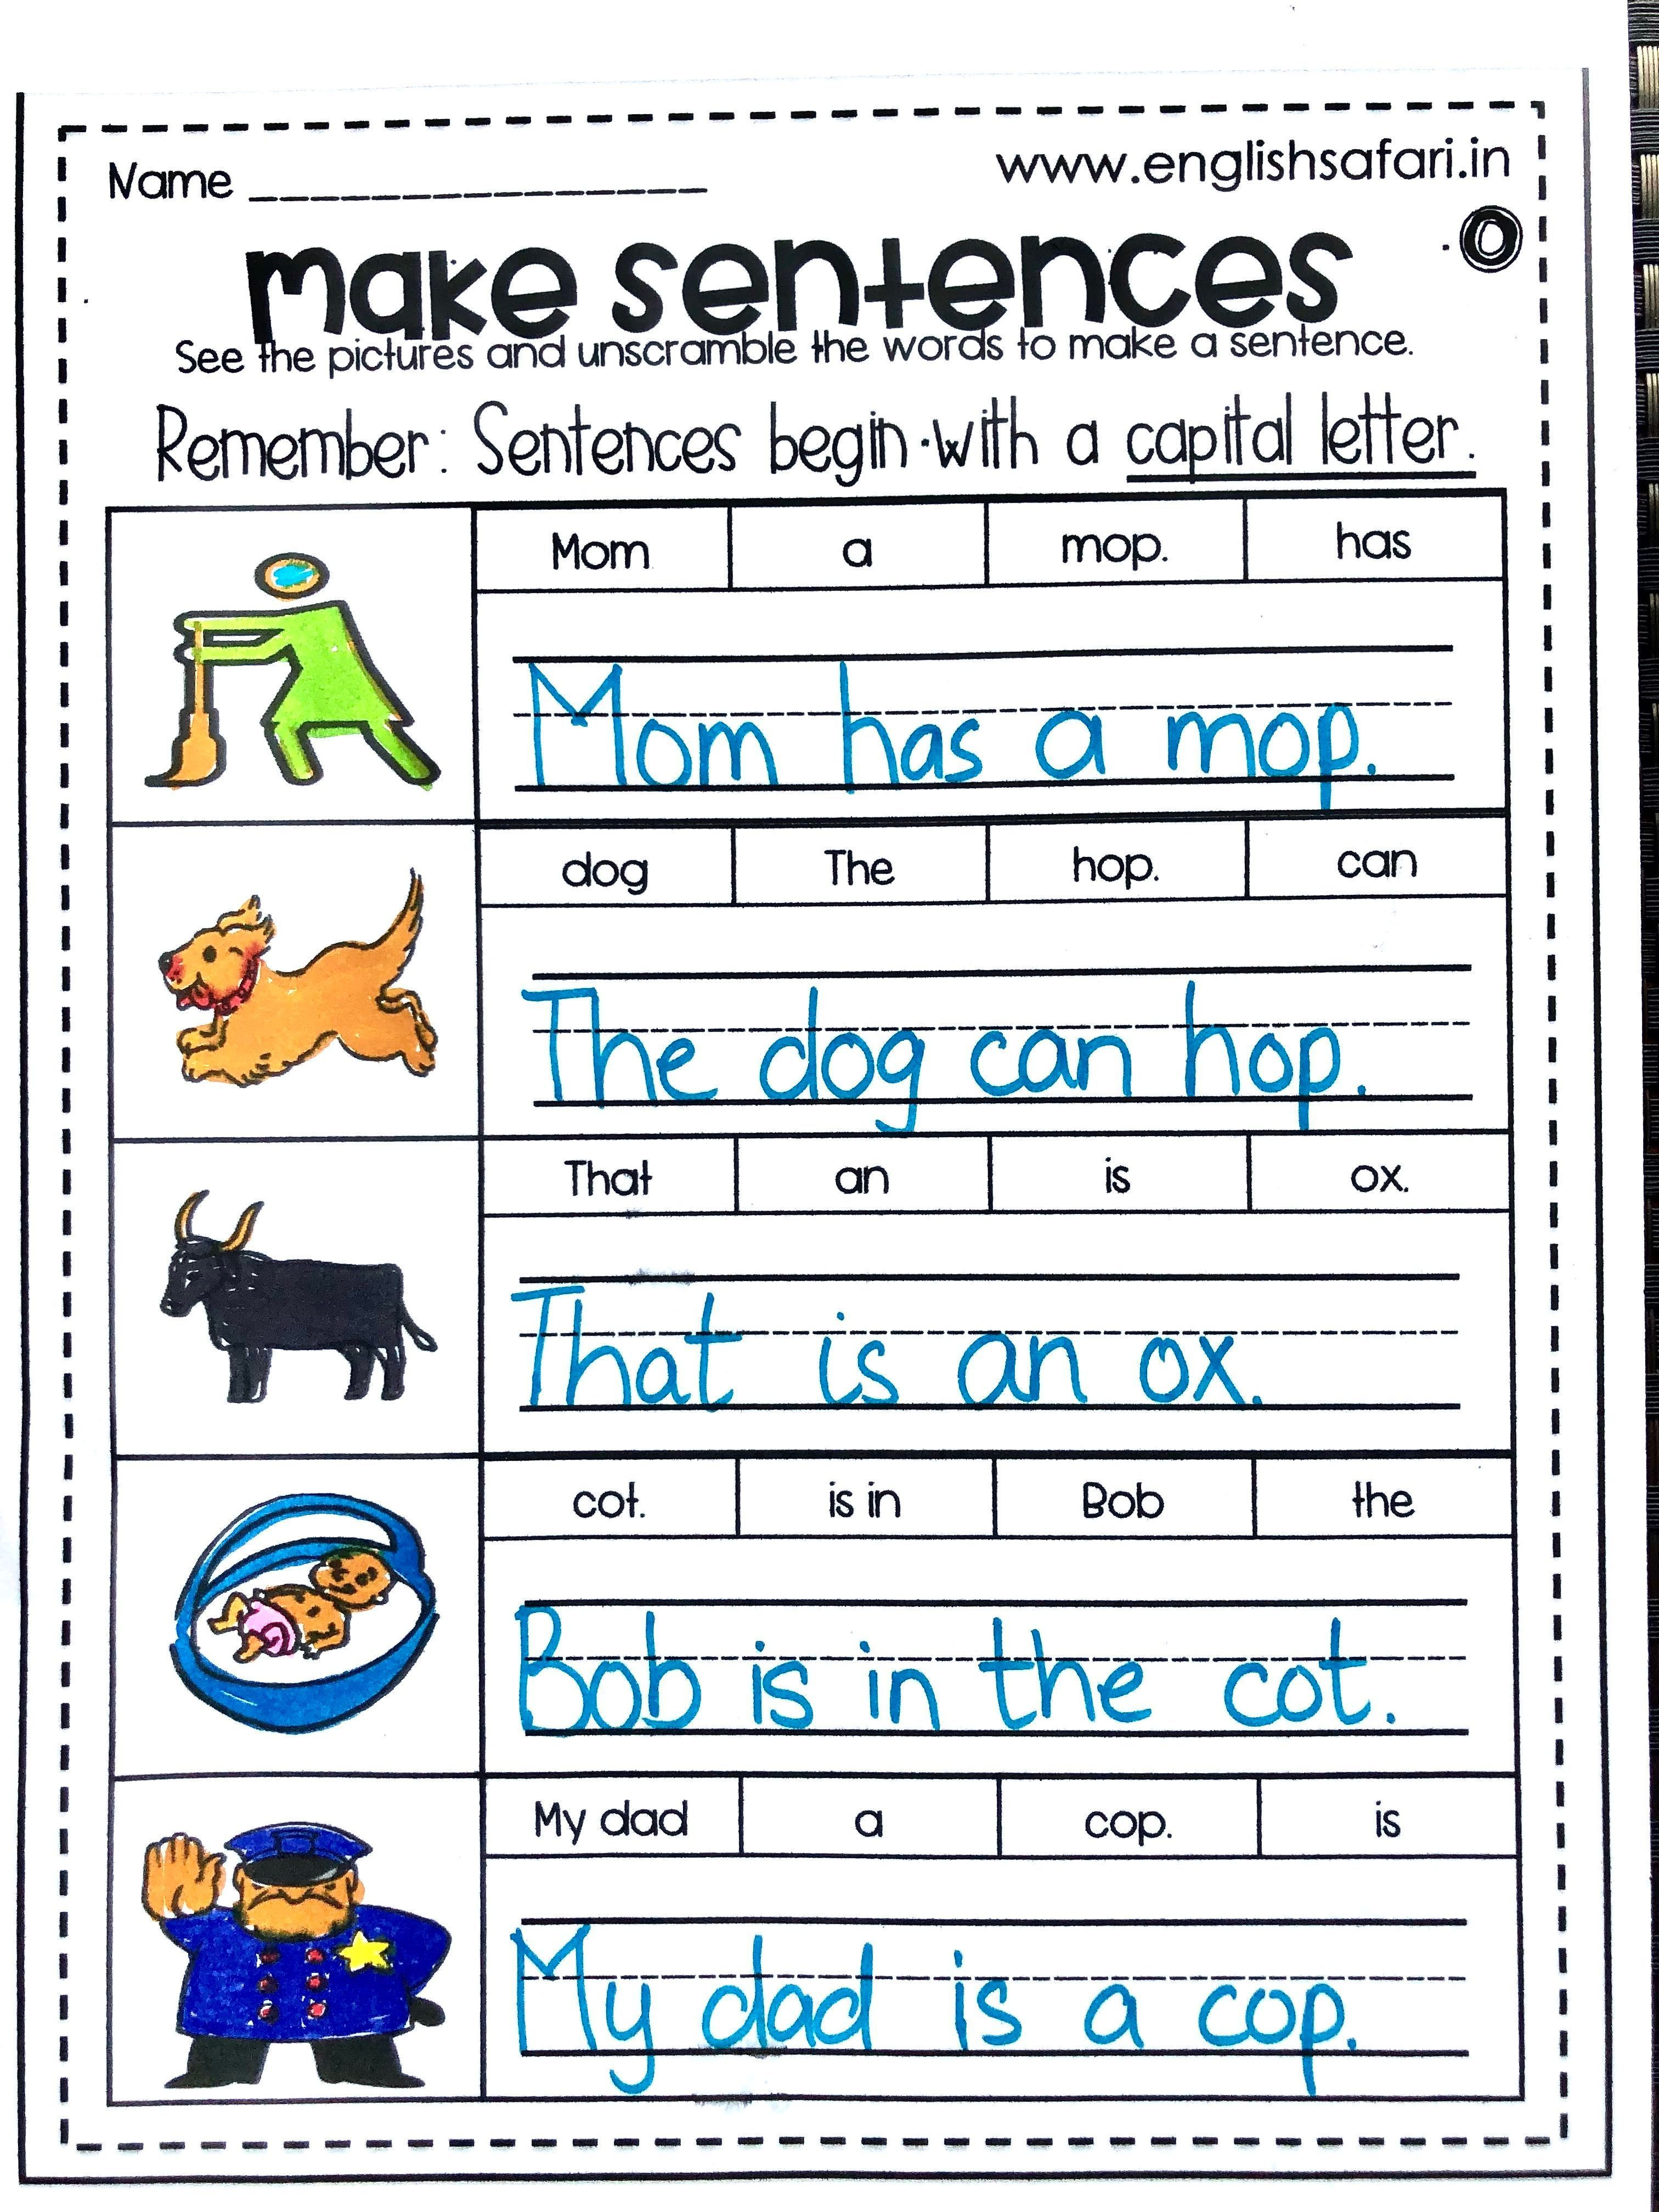 Basic Sentence Worksheets Printable Worksheets Are A Precious Sch In 2021 Writing Sentences Kindergarten 2nd Grade Reading Worksheets Kindergarten Reading Worksheets Learning to write sentences worksheets